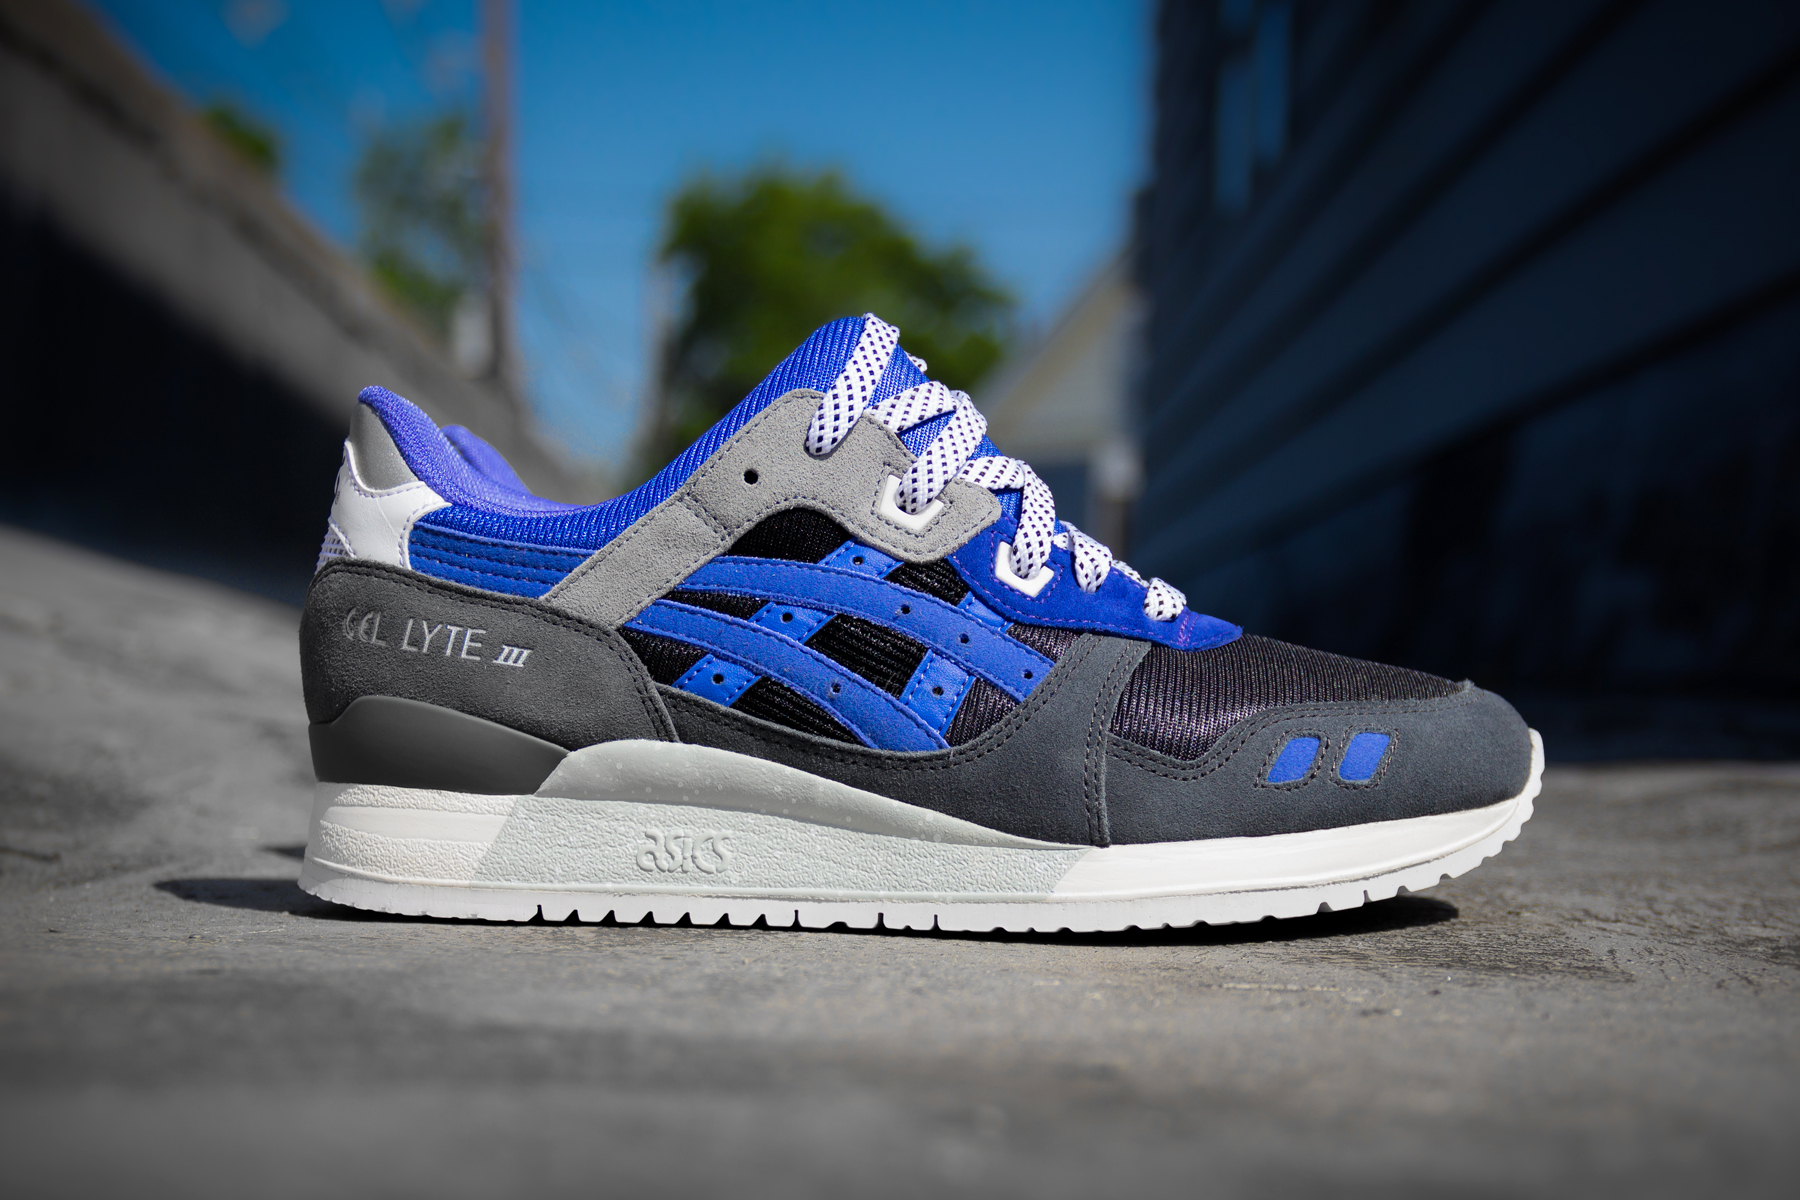 sneaker freaker x asics gel lyte iii alvin purple reissue hypebeast. Black Bedroom Furniture Sets. Home Design Ideas